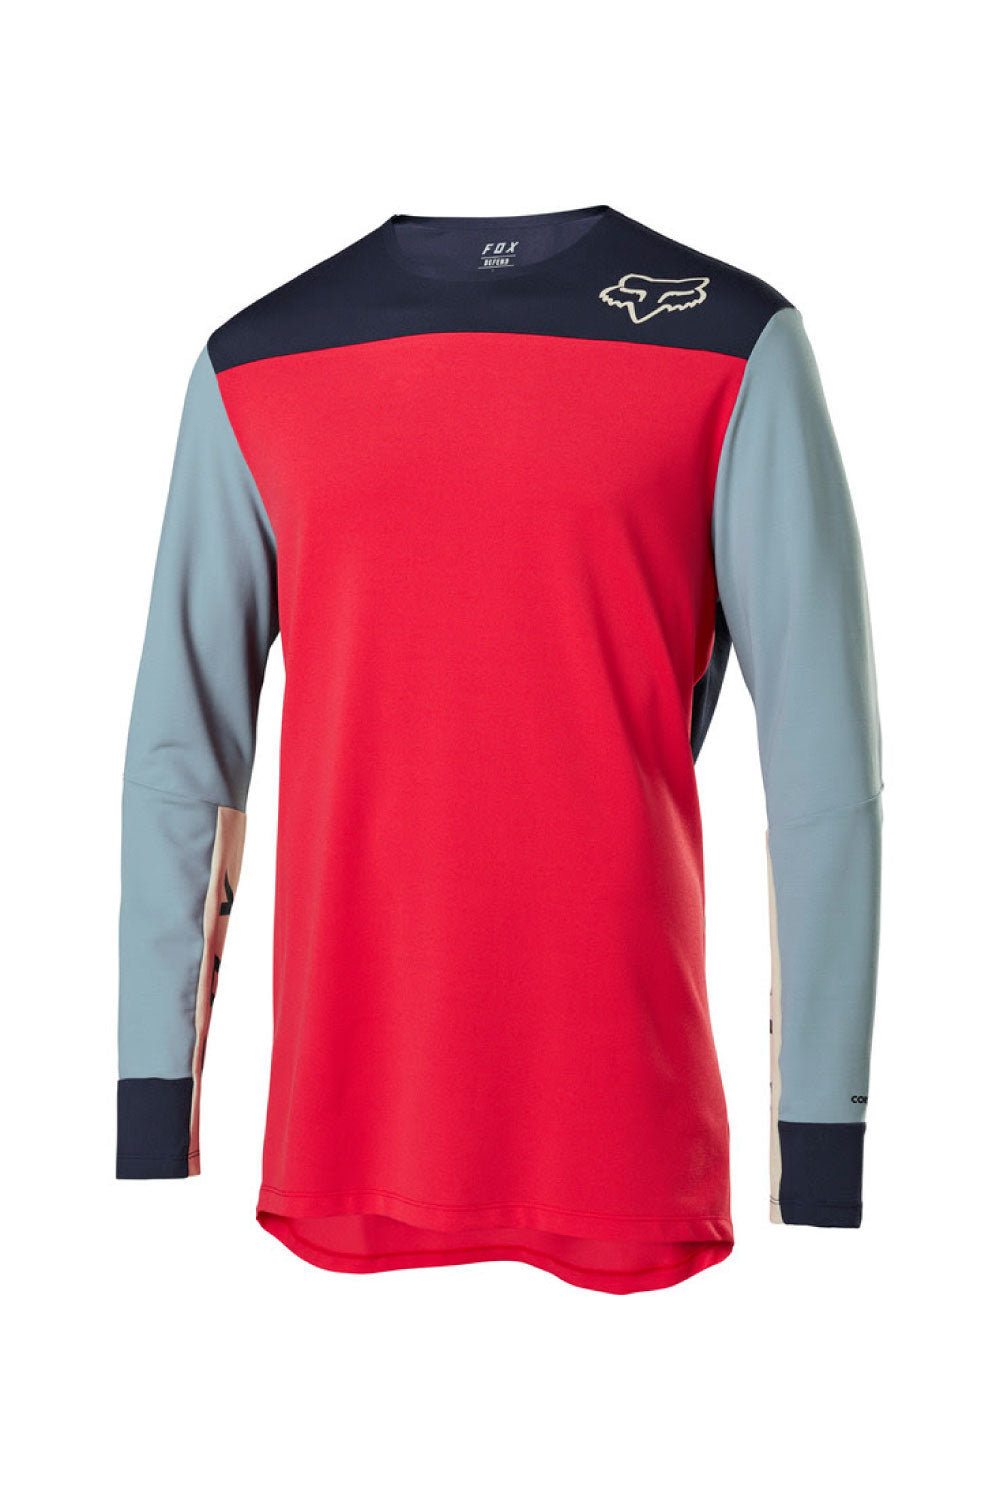 FOX 2020 Defend Delta Long Sleeve MTB Bike Jersey